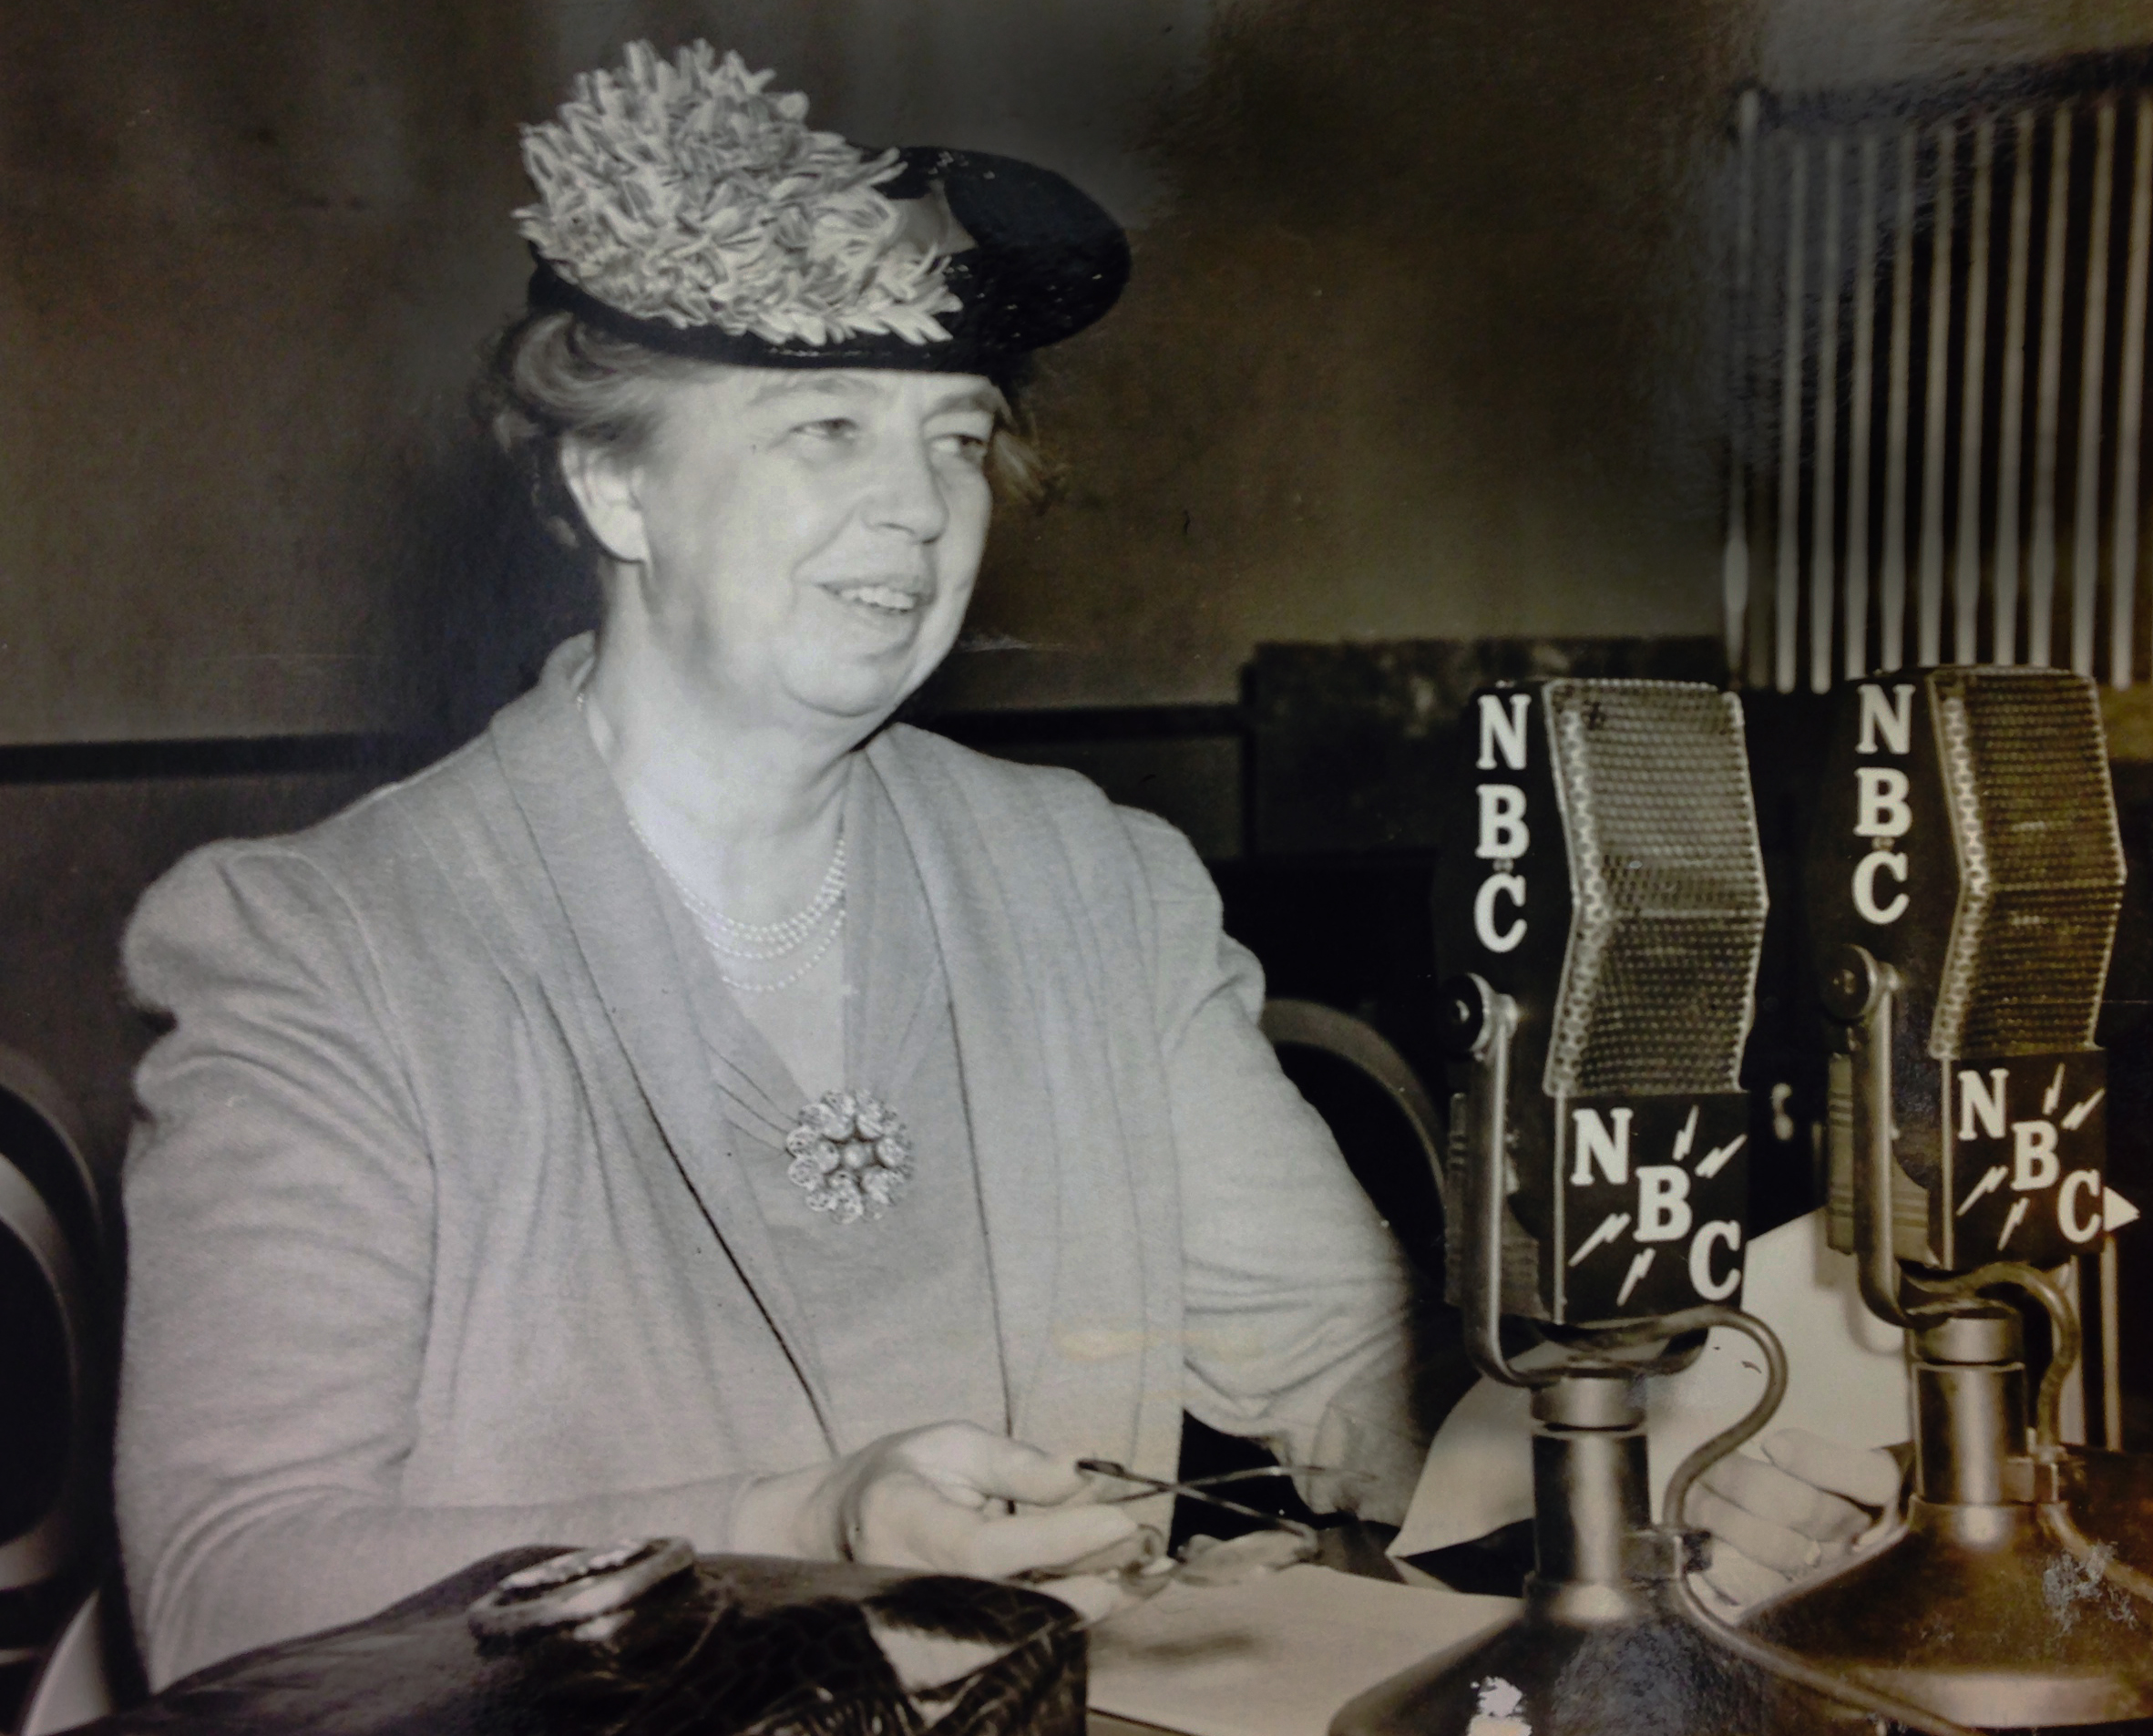 eleanor roosevelt the first lady of radio american radioworks ldquomrs eleanor roosevelt s own programrdquo was an afternoon radio series broadcast twice a ldquo